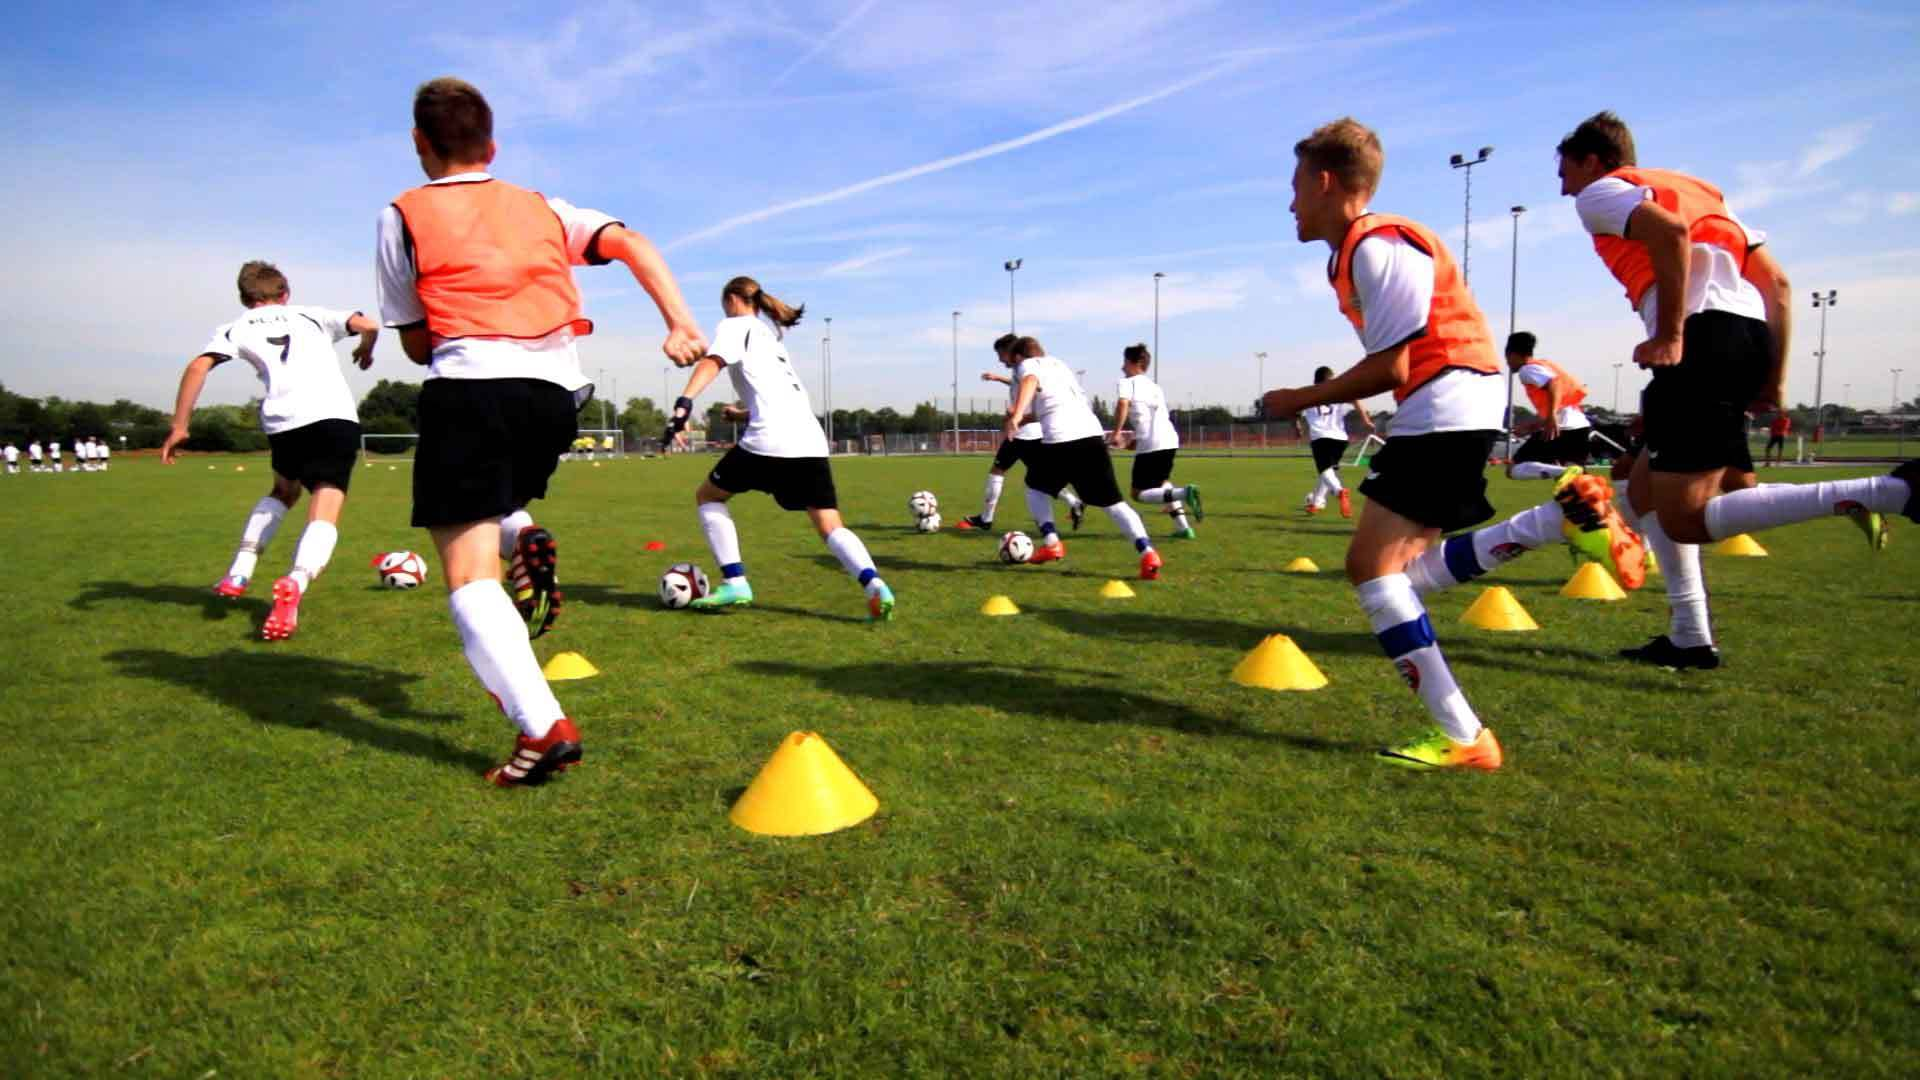 Speedtraining Hasenjagd mit Ball